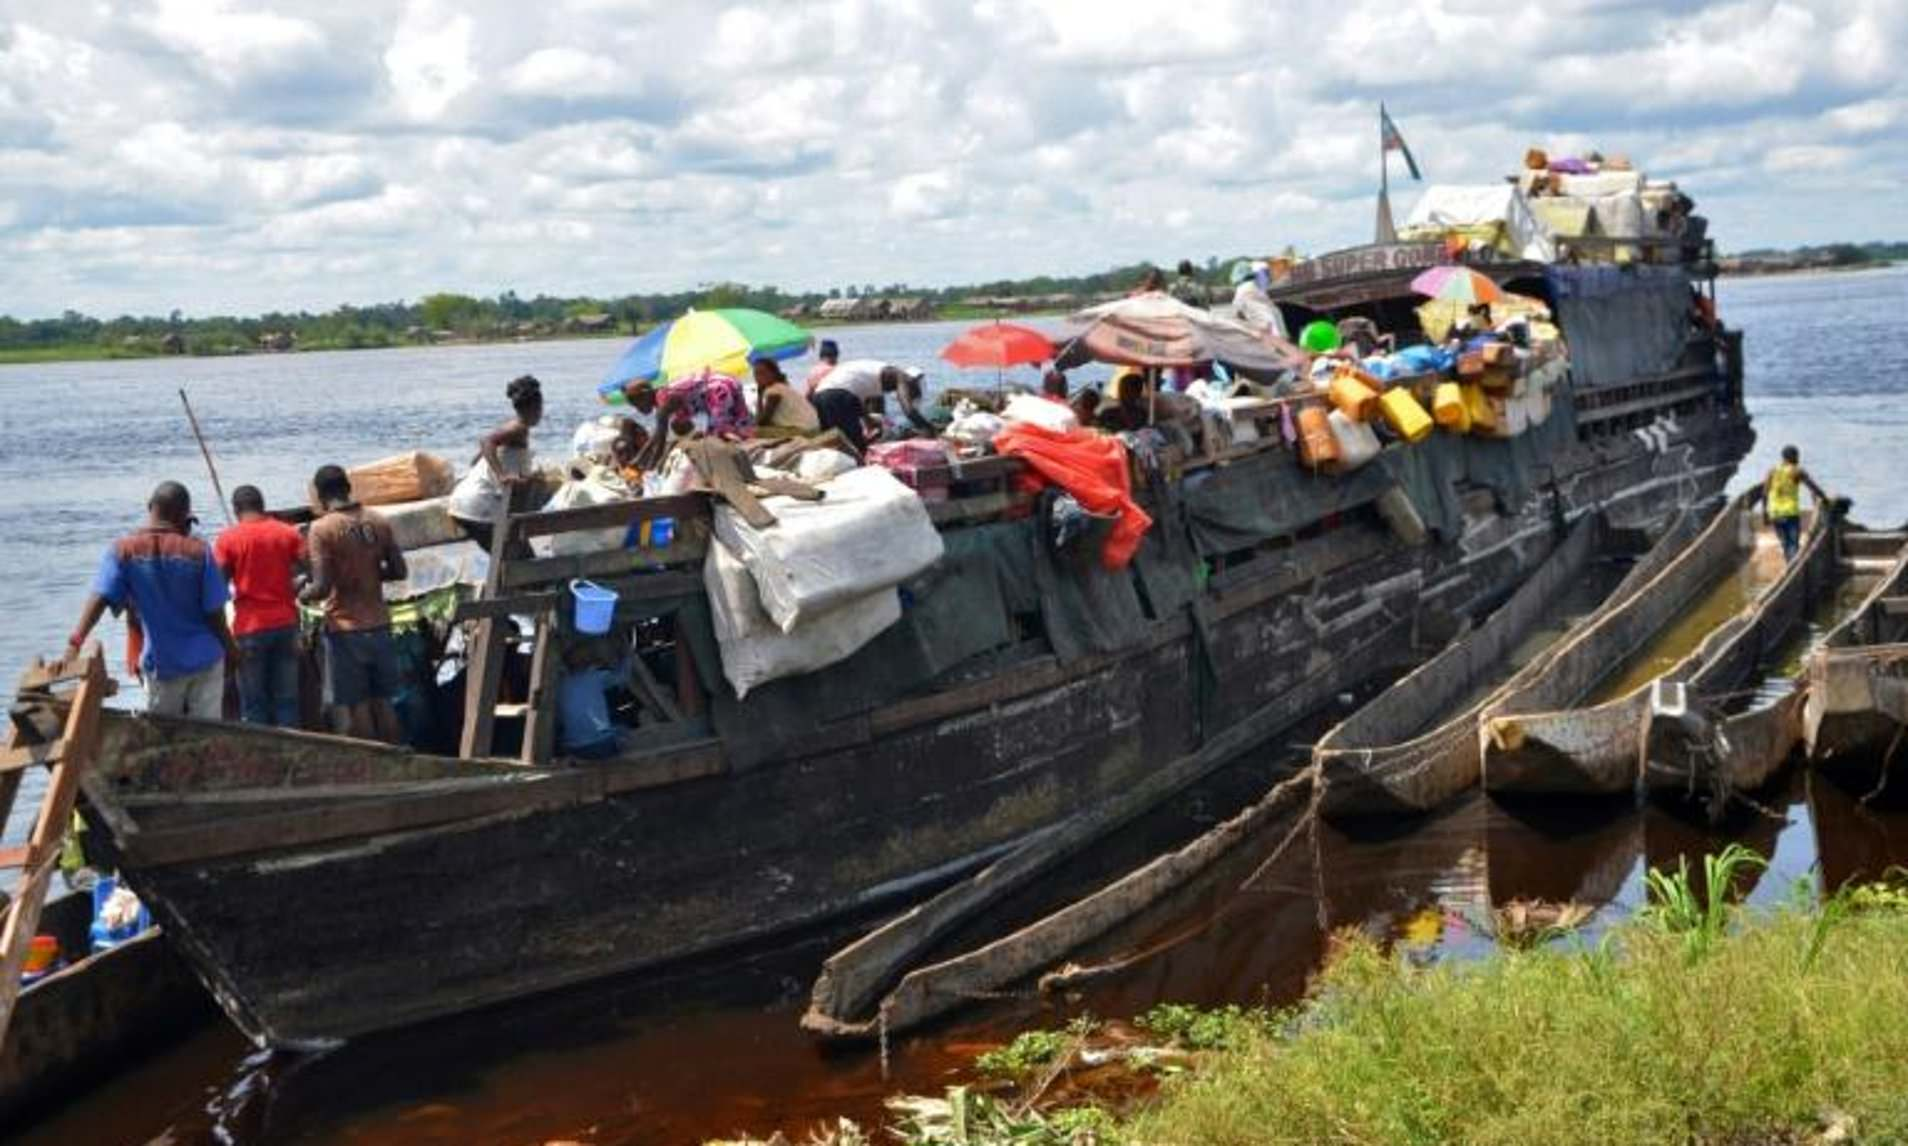 DR Congo boat accident claims 11 lives, dozens missing